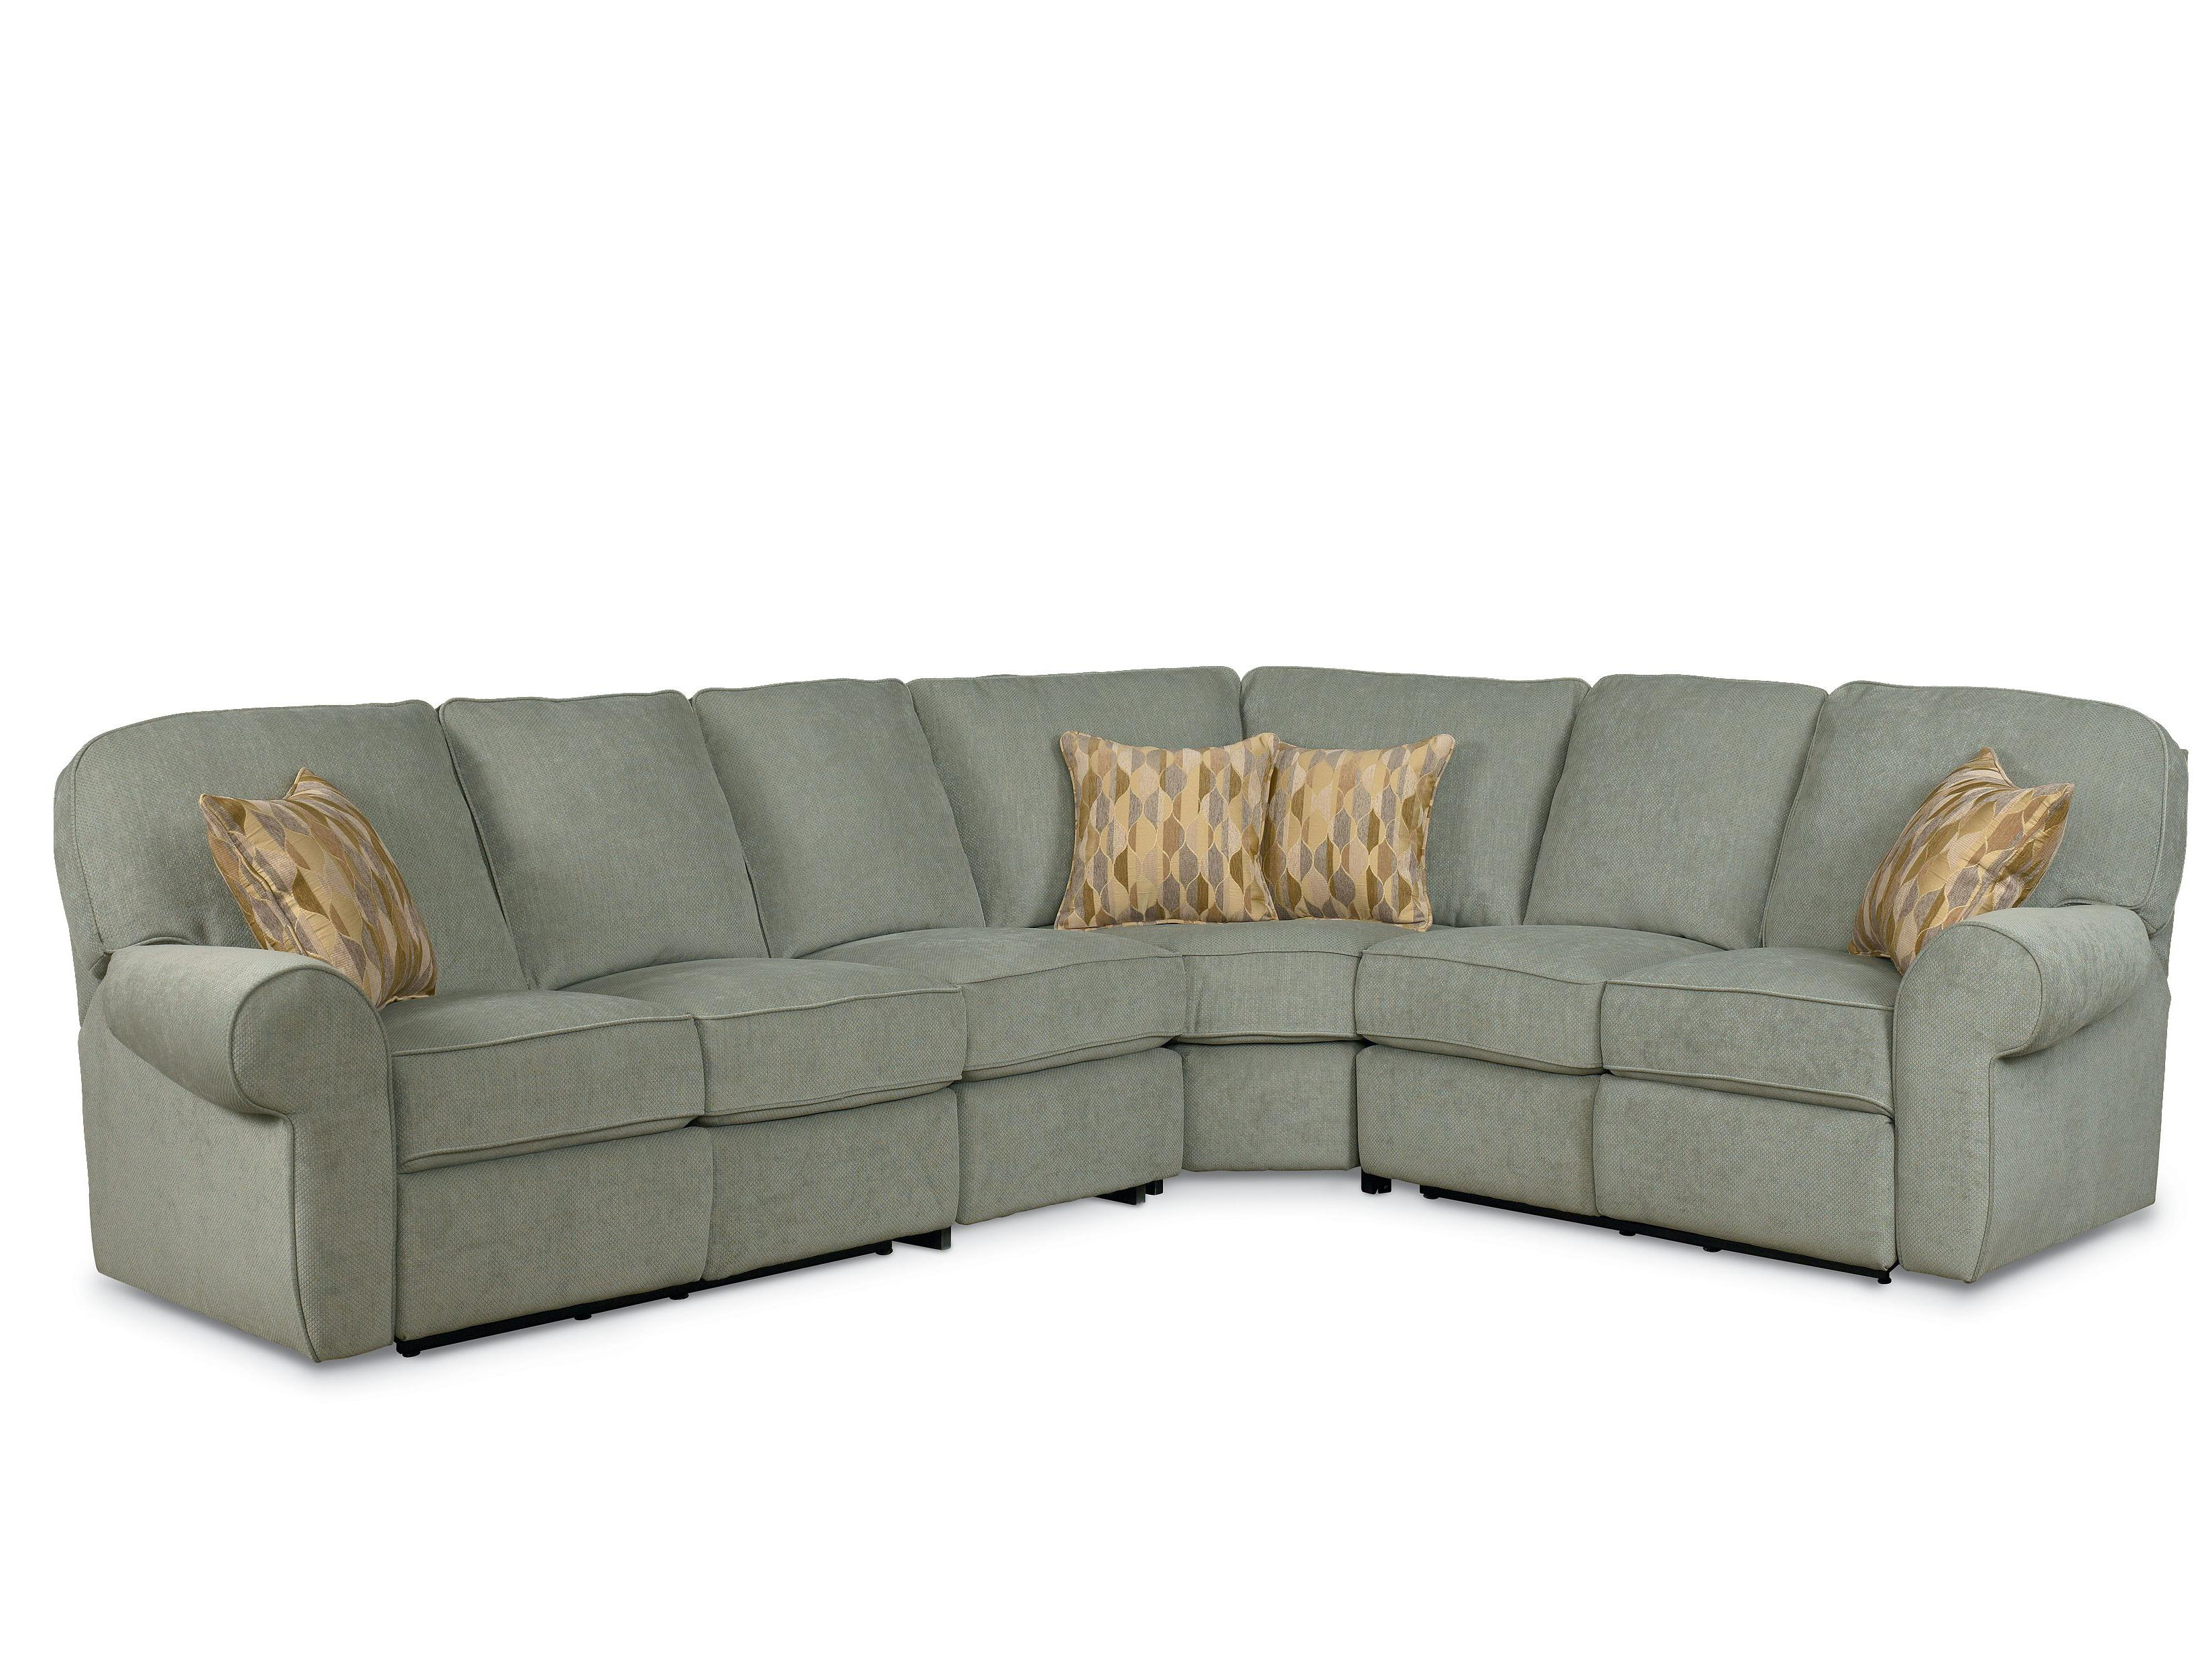 Great Lane Megan Powerized Reclining Sectional Sofa   Item Number: 343 03+91+